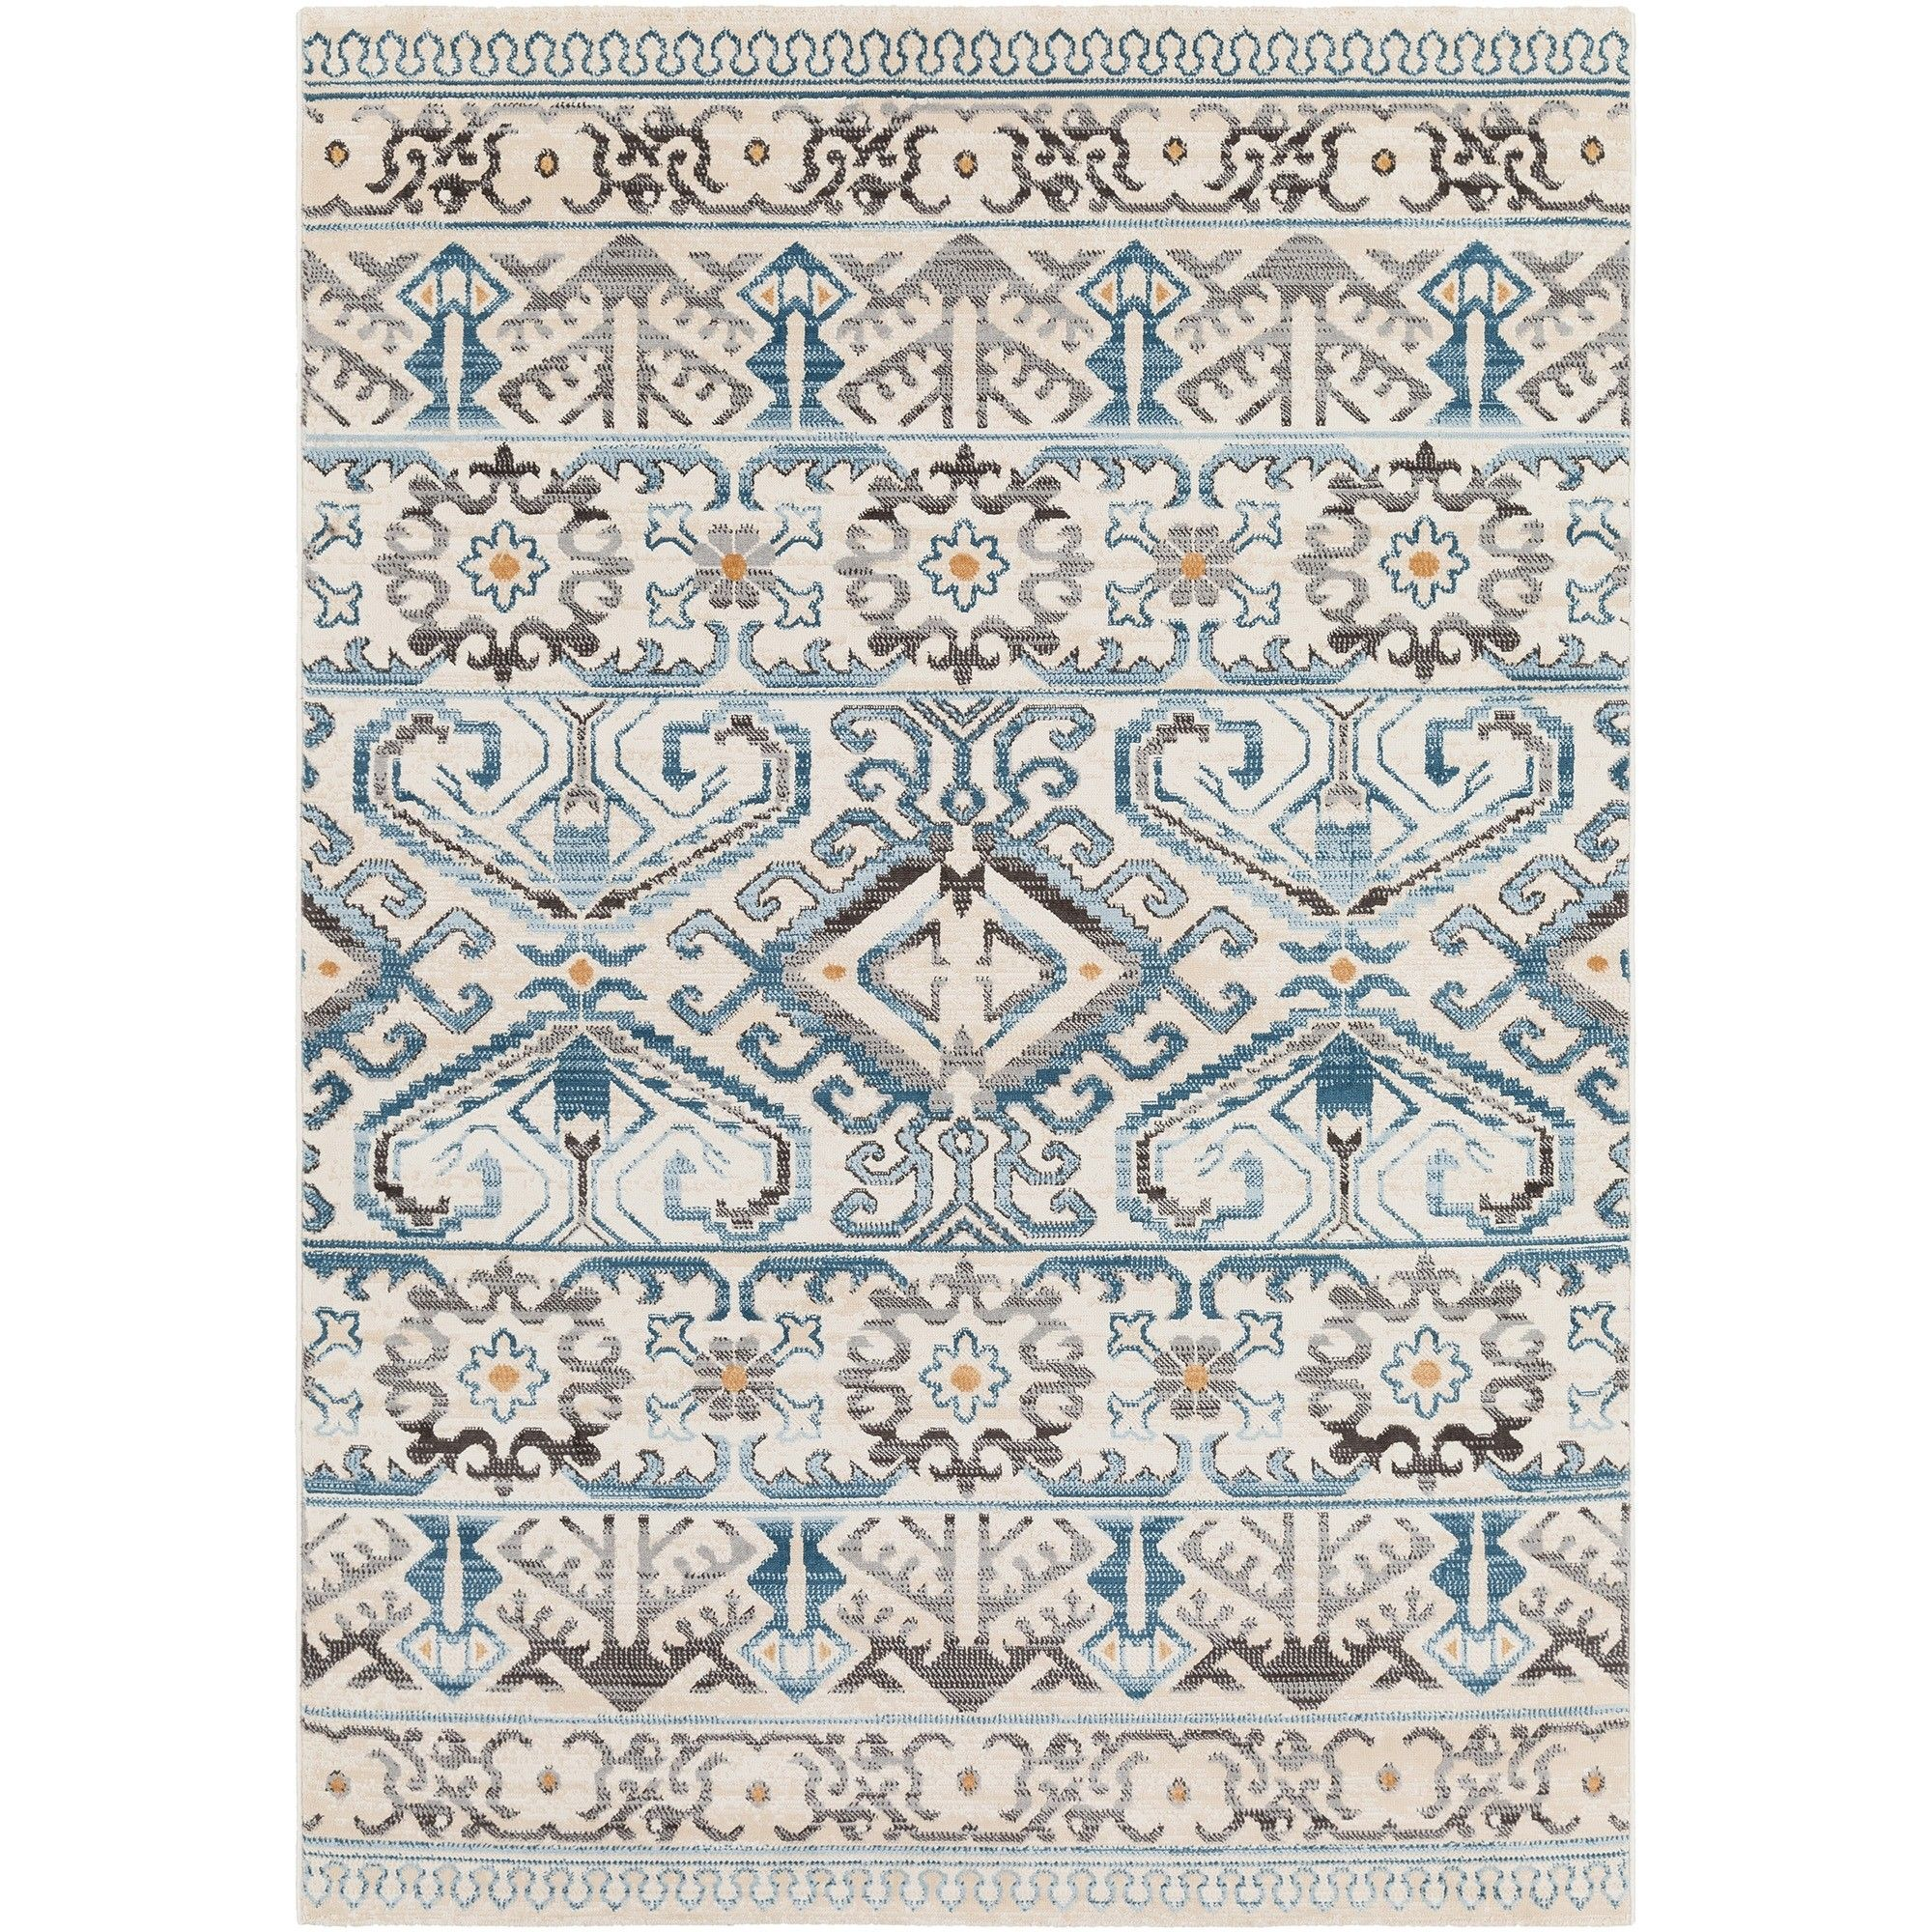 100 Polypropylene Machine Made Medium Pile Pile Height 0 23 Made In Turkey Available Sizes 5 3 X 7 6 7 10 X 10 3 Area Throw Rugs